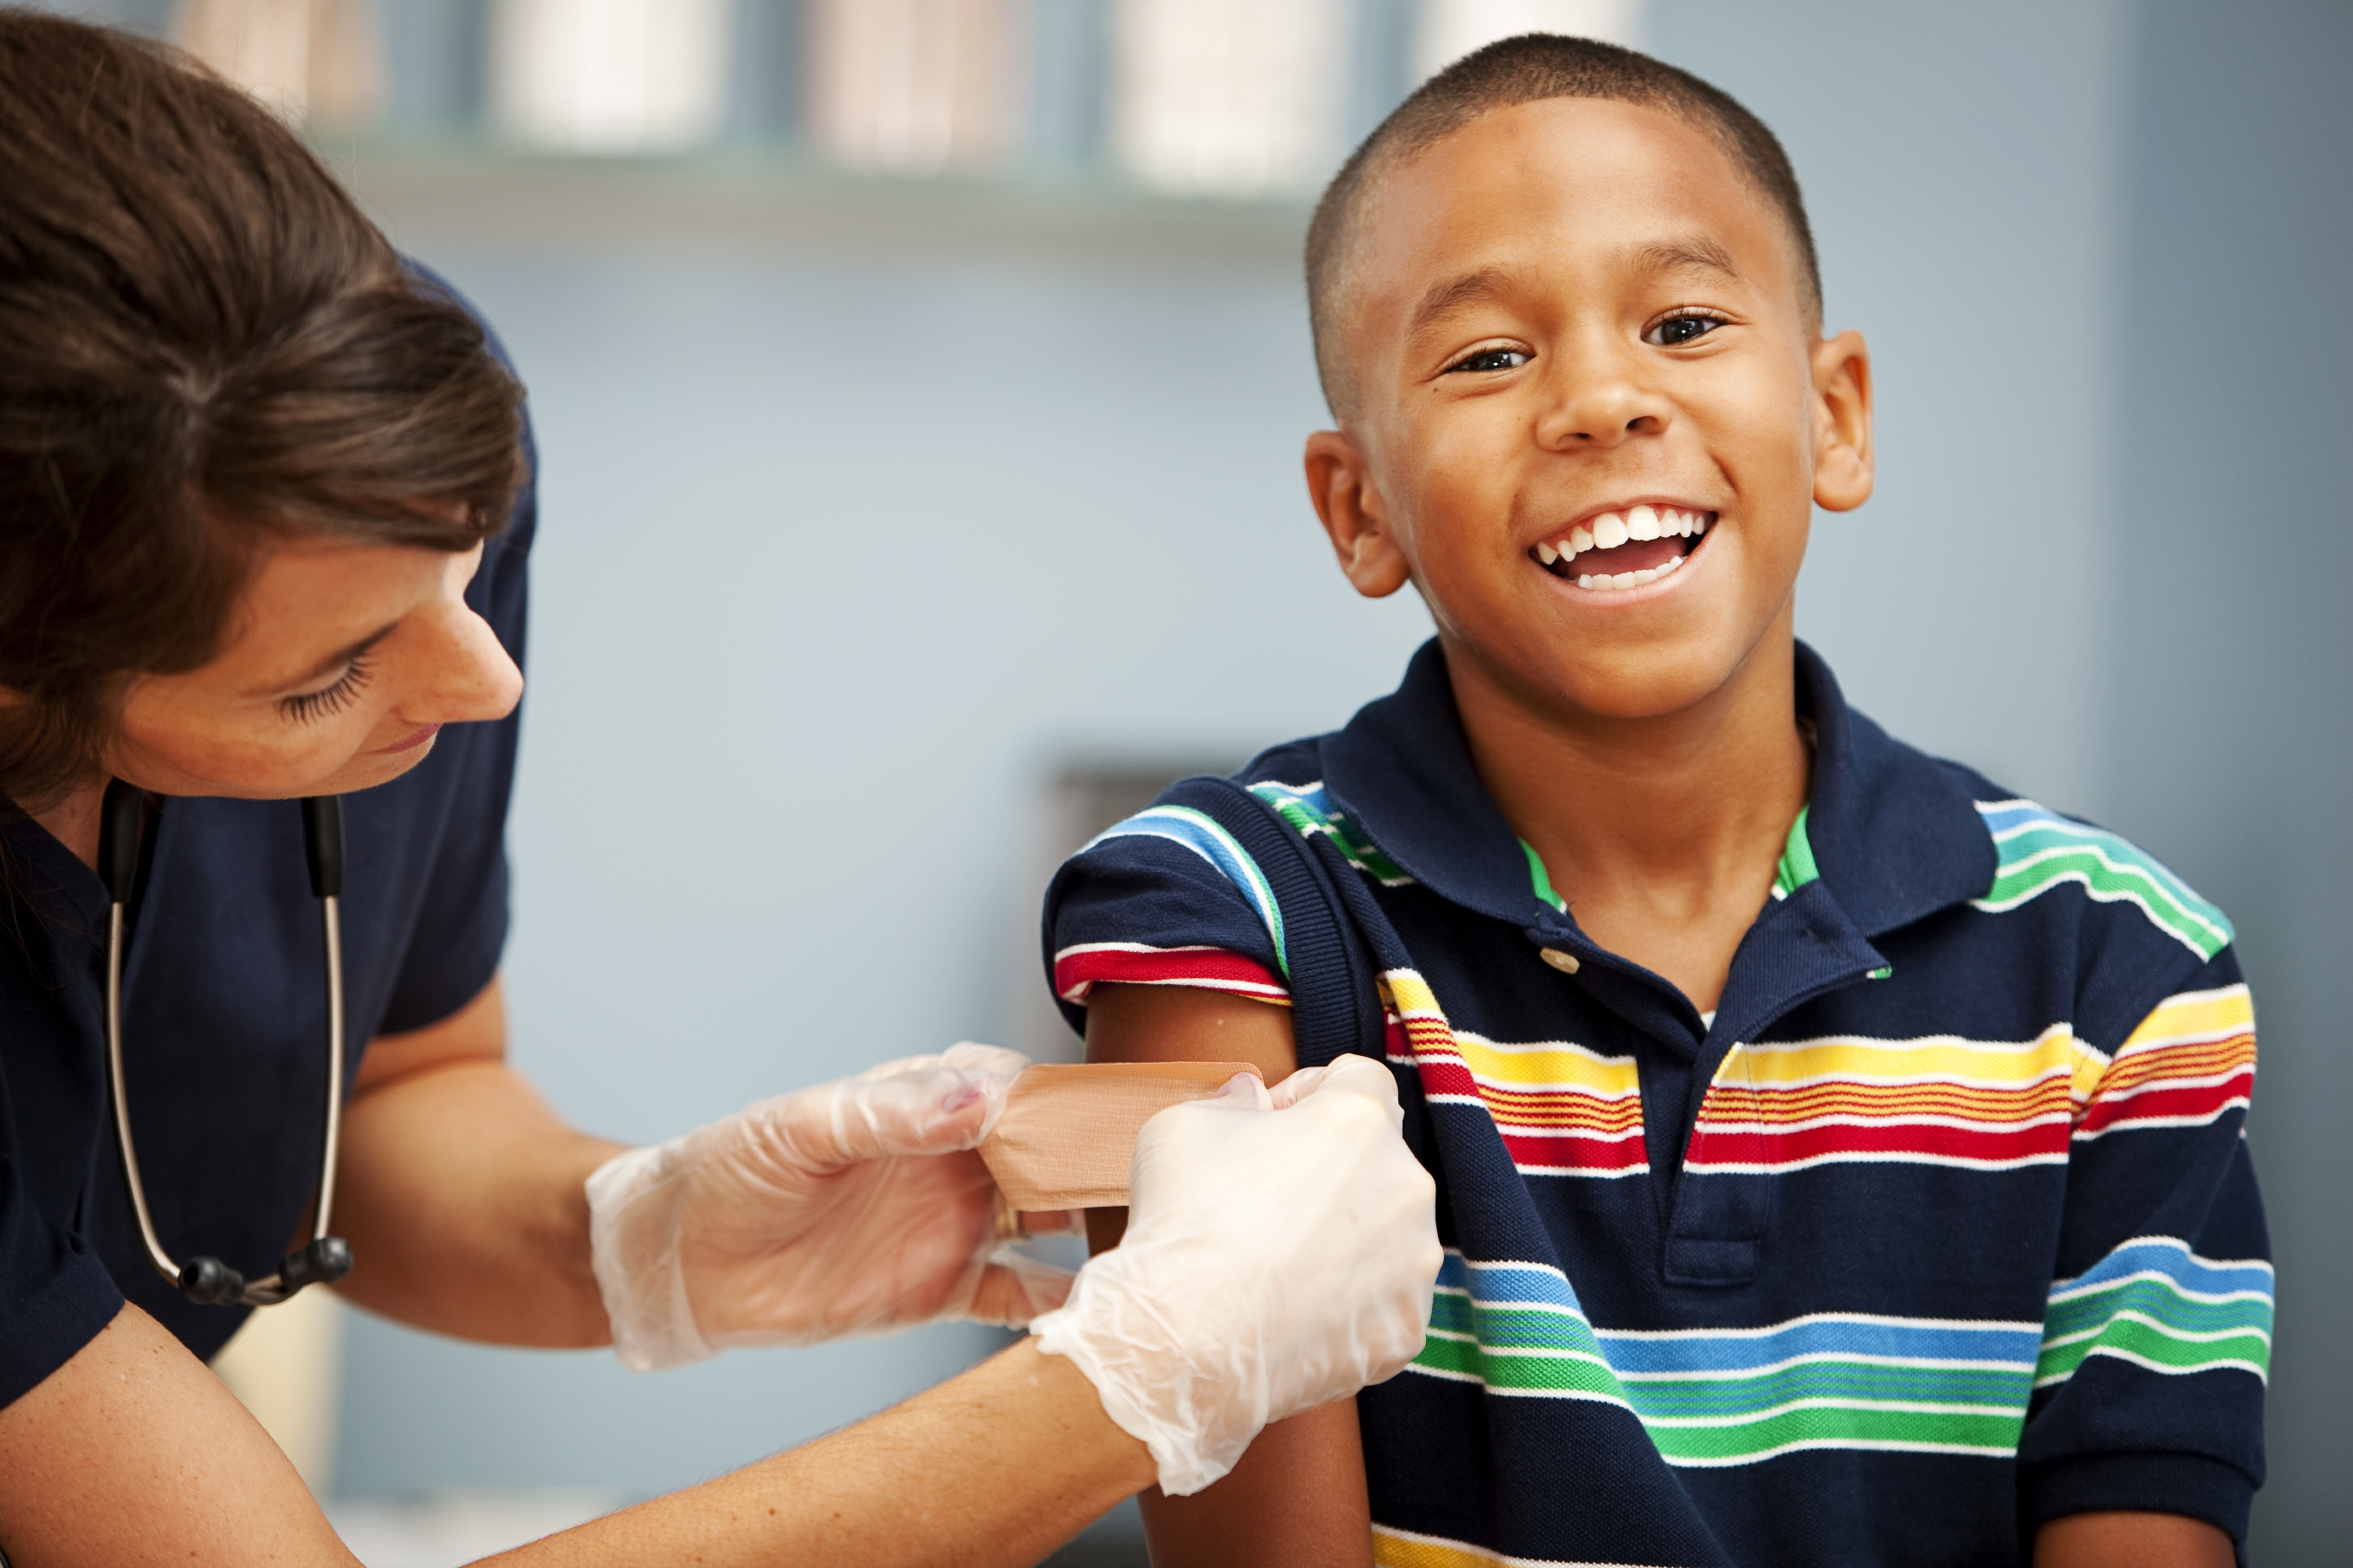 Protect Yourself and Others: Get Your Annual Flu Vaccine at Westmed